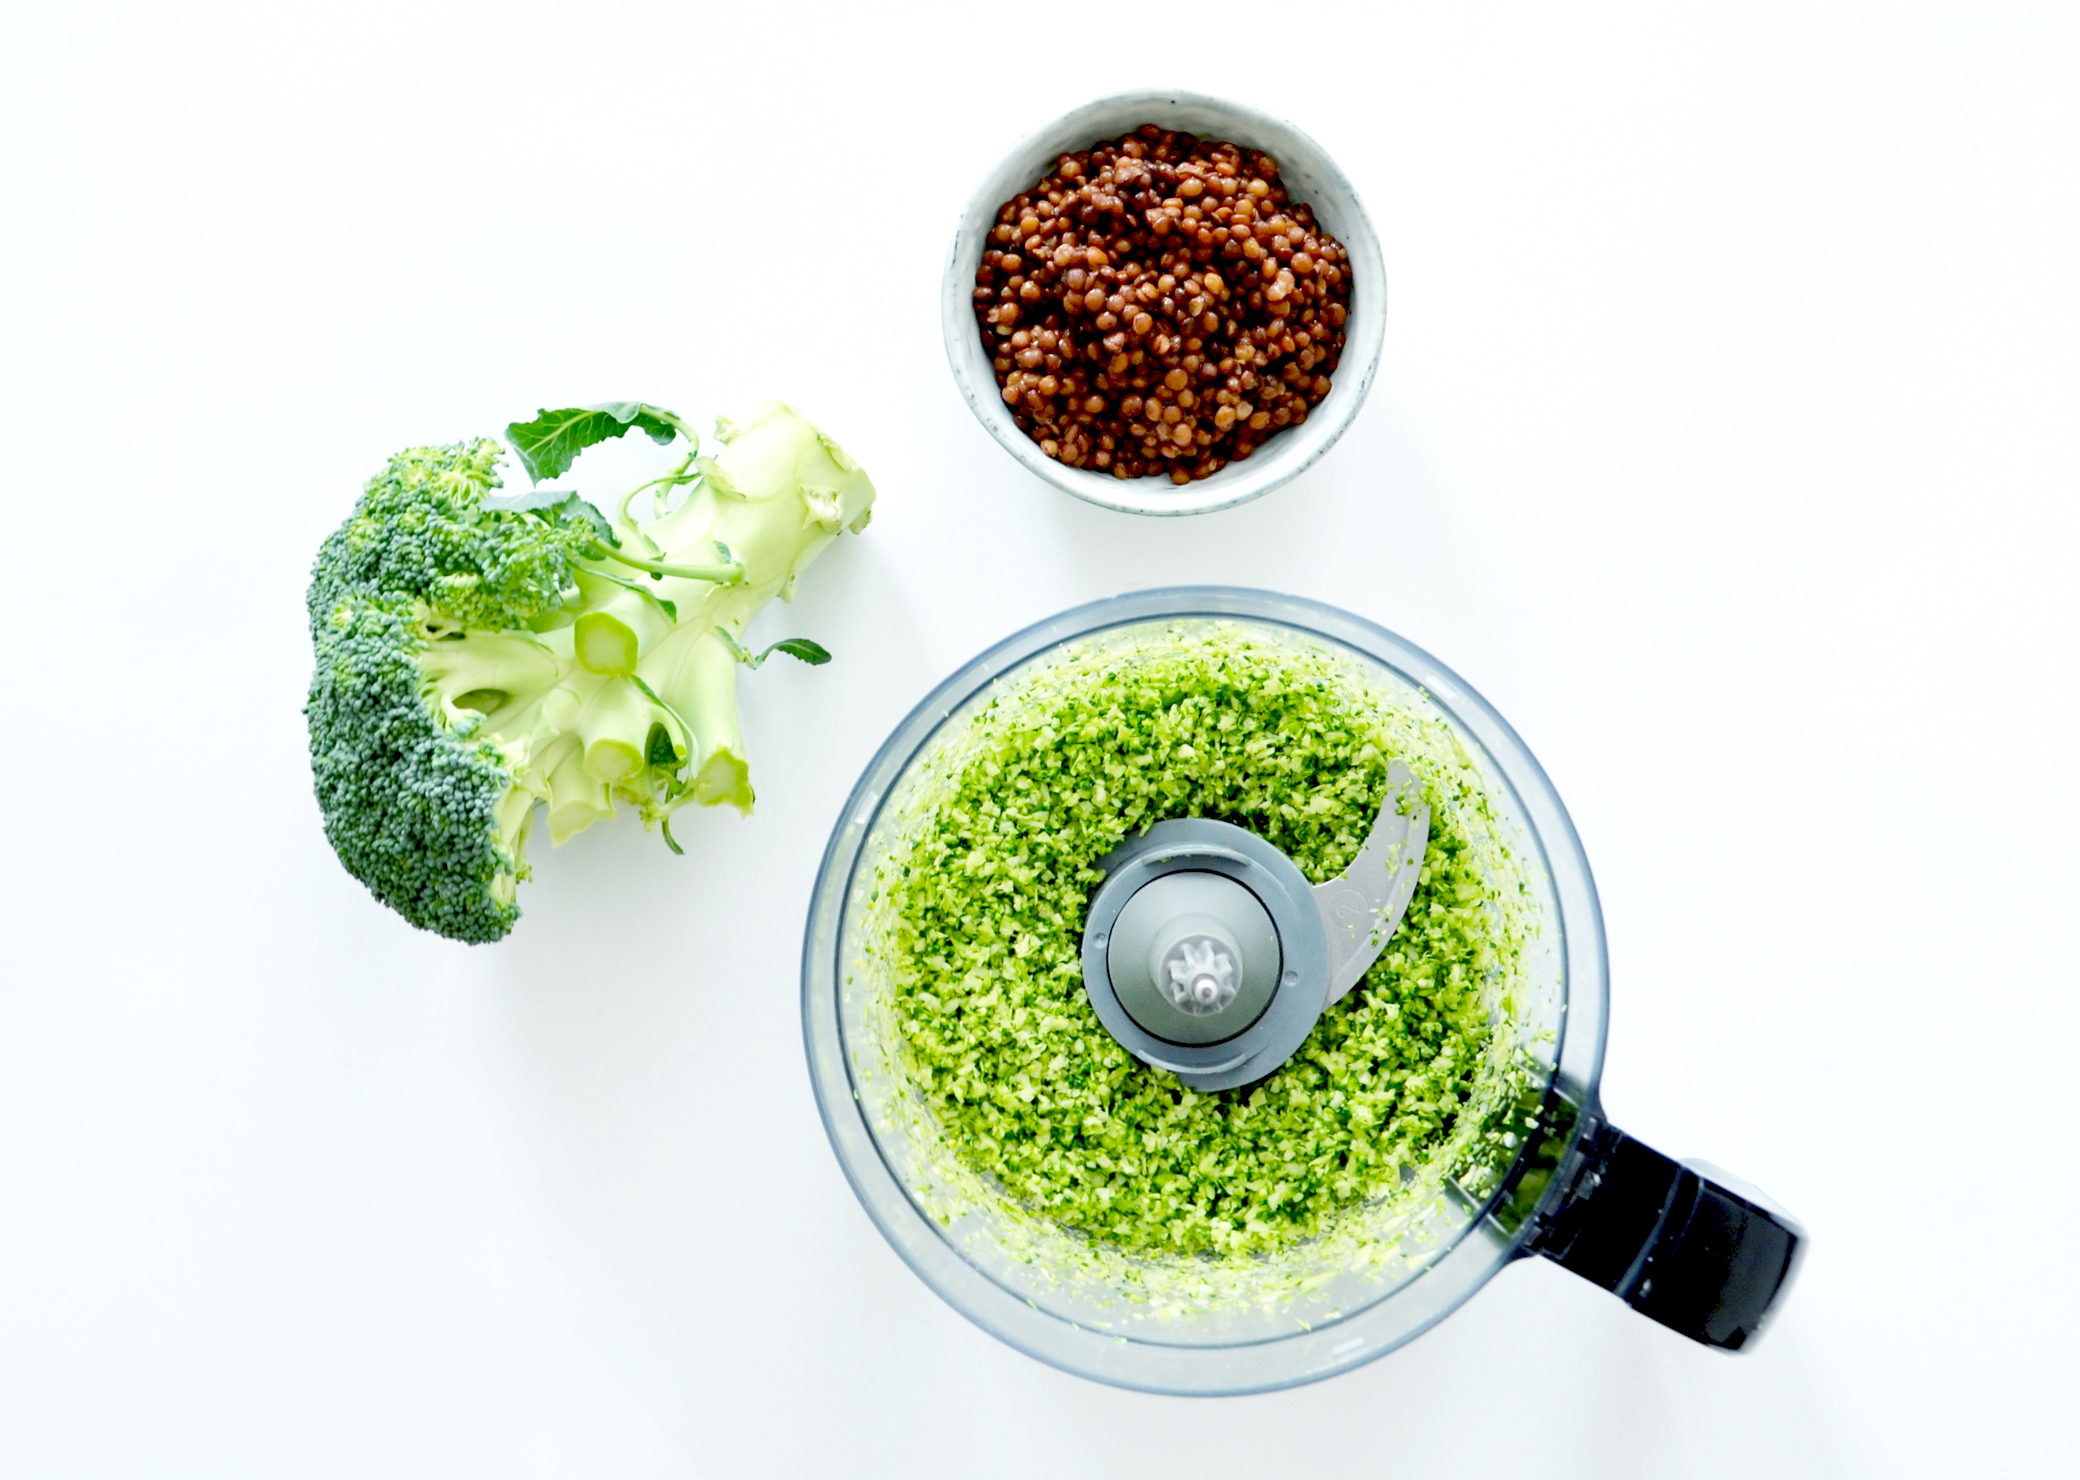 Broccoli Rice with Lentils - Soophisticated.com